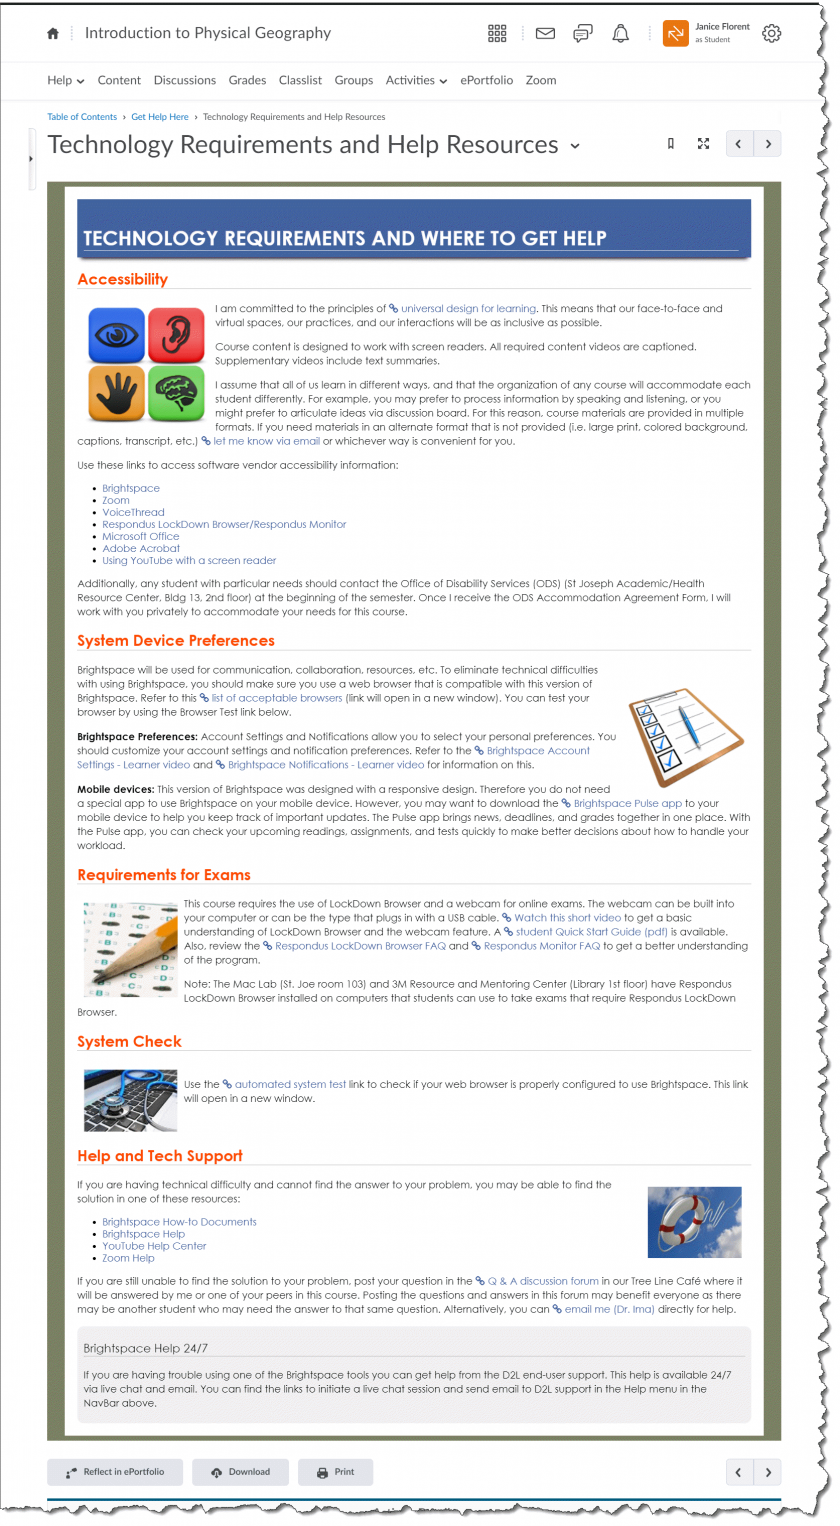 Intro-Physical-Geography-Tech-Help-1674.png